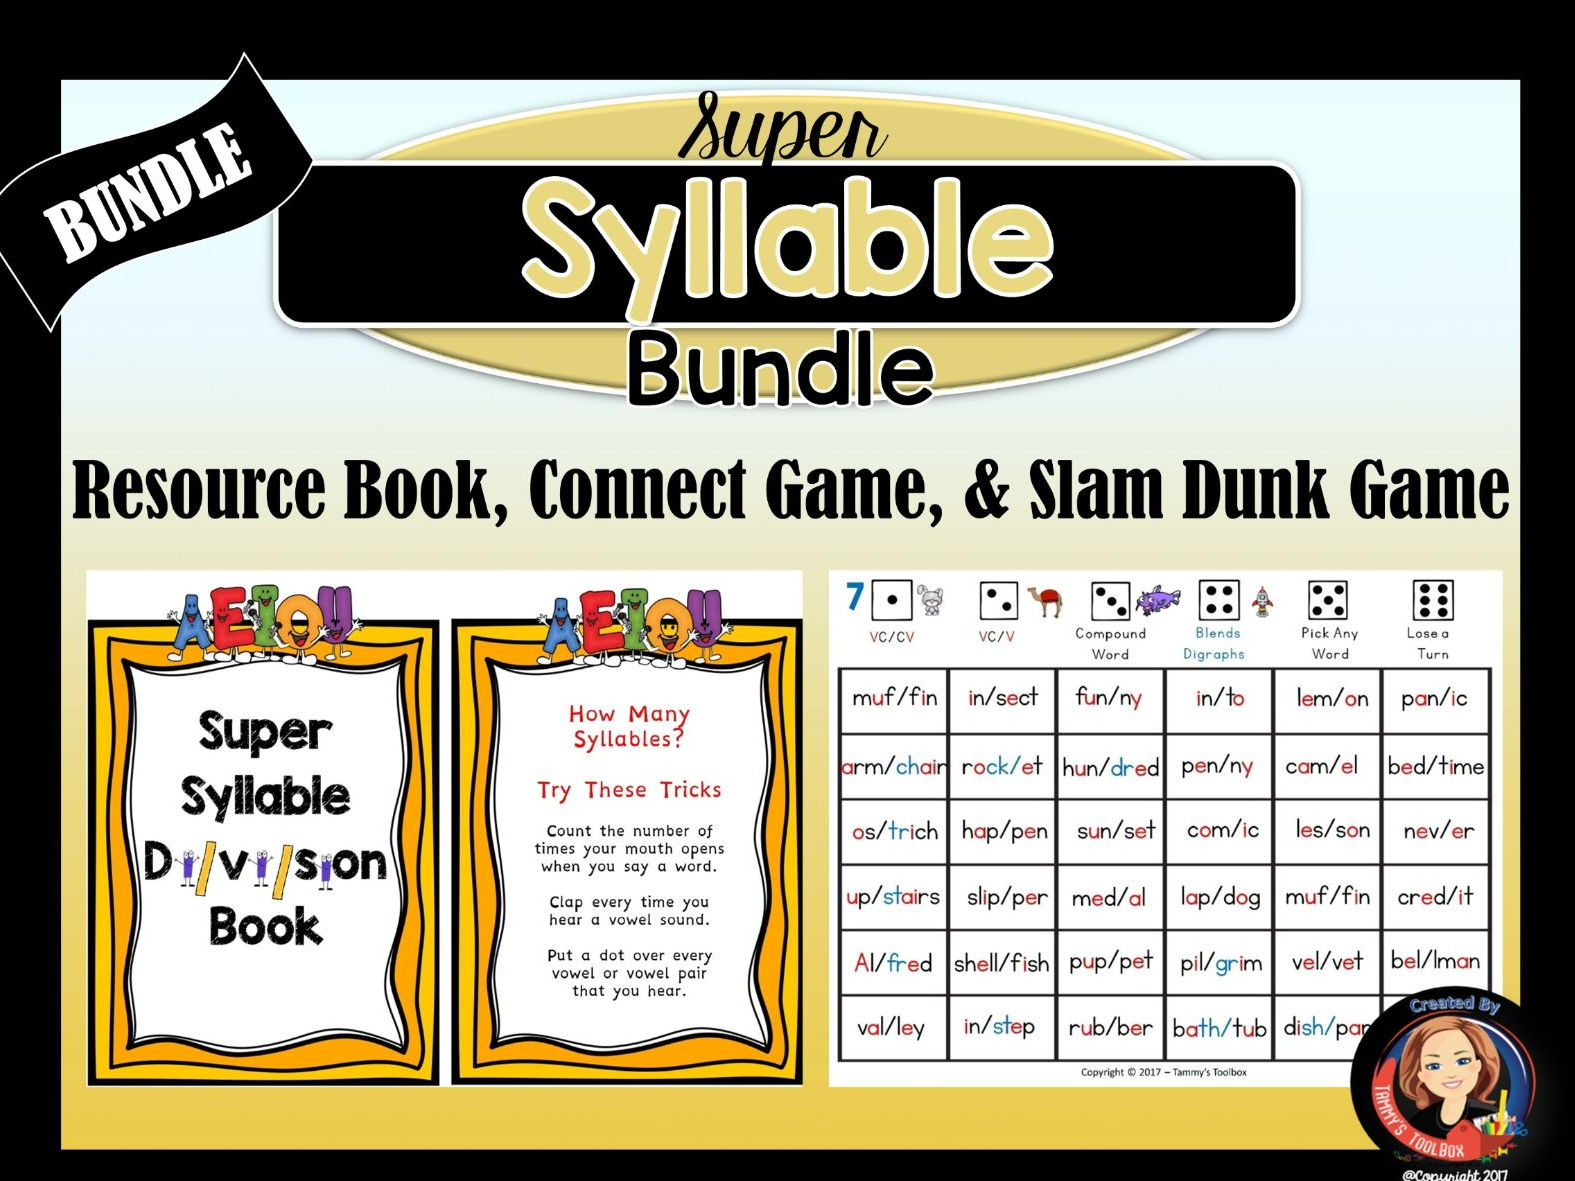 Syllable Division Activities and Games